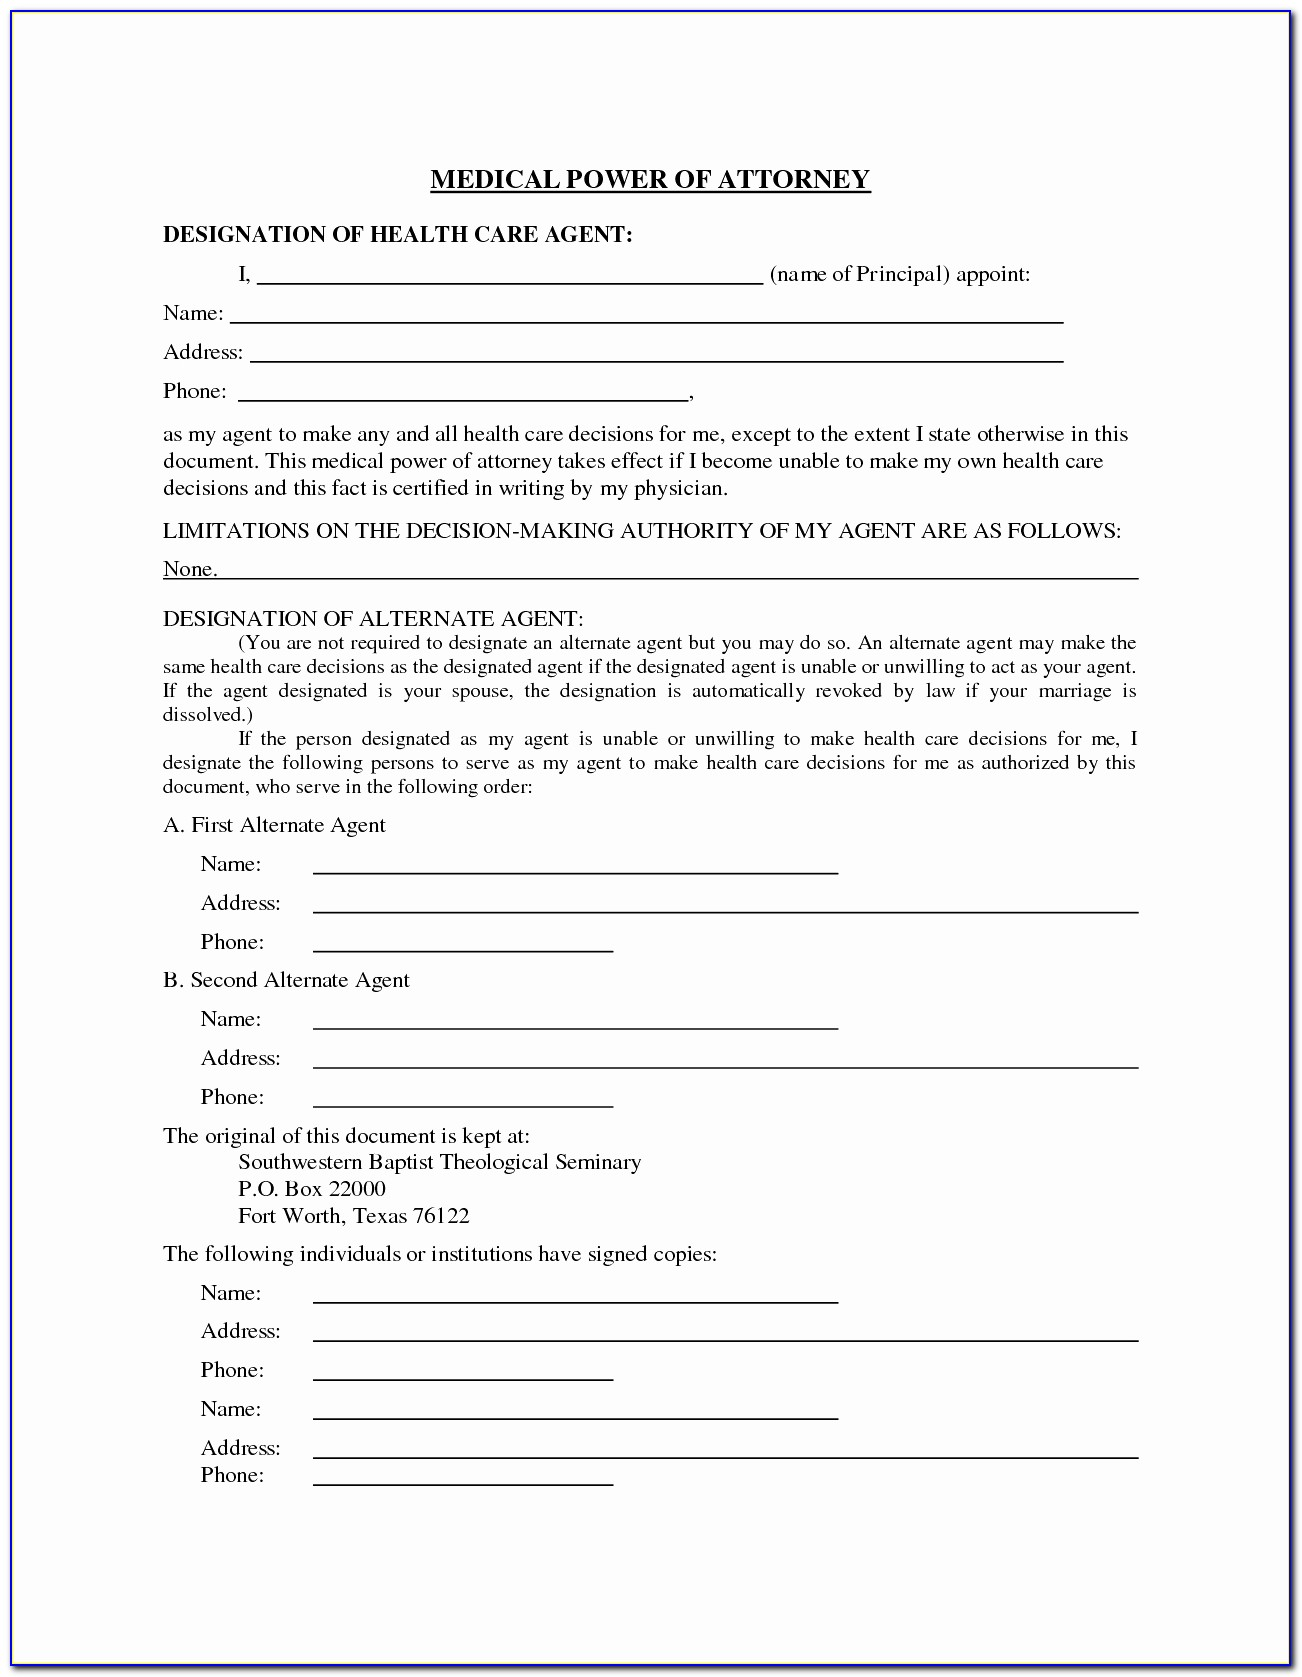 General Power Of Attorney Form Oklahoma Lovely 50 Awesome General Power Attorney Form Oklahoma Documents Ideas